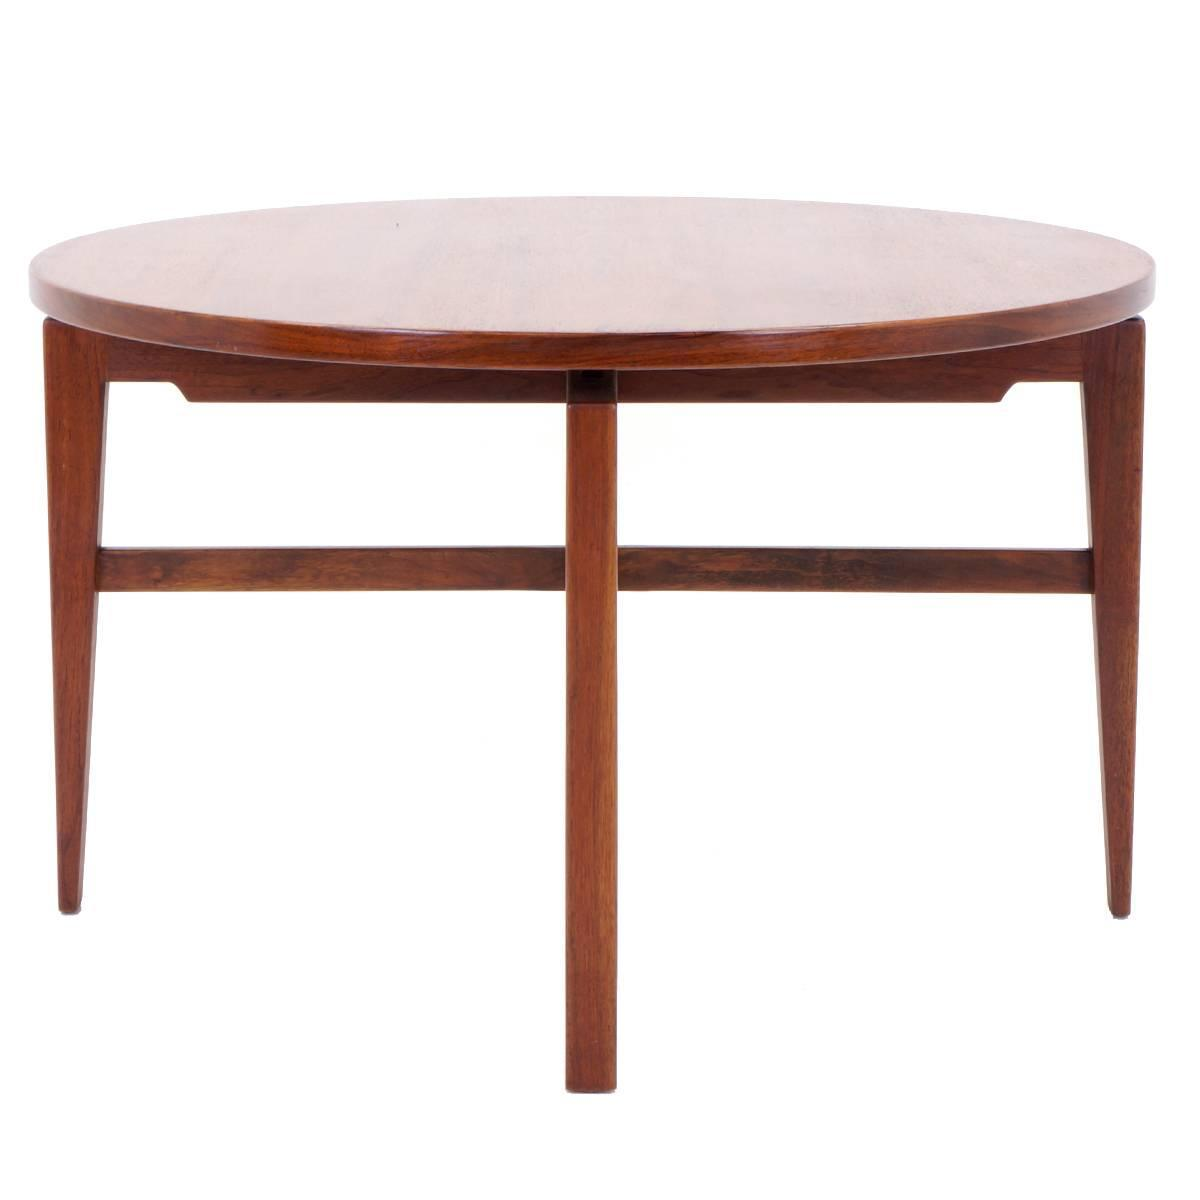 revolving dining chair ethan allen wingback chairs jens risom top lazy susan game or table